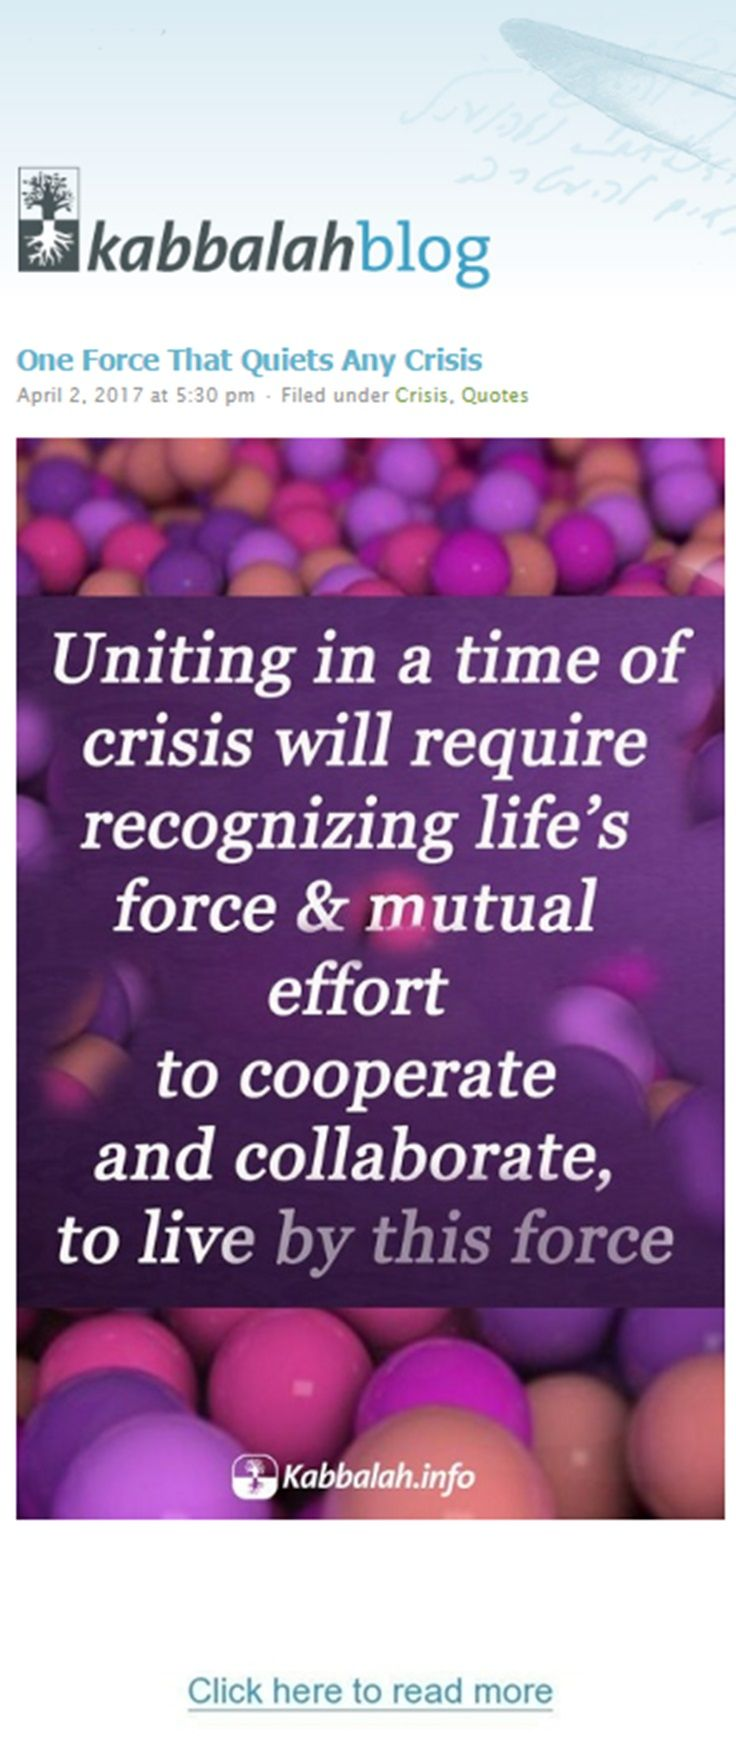 One Force that Quiets Any Crisis Uniting in a time of crisis will require recognizing life's force & a mutual effort to cooperate and collaborate, to live by this force. #quoteskabbalahinfo #quote #kabbalah #crisis http://www.kabbalahblog.info/